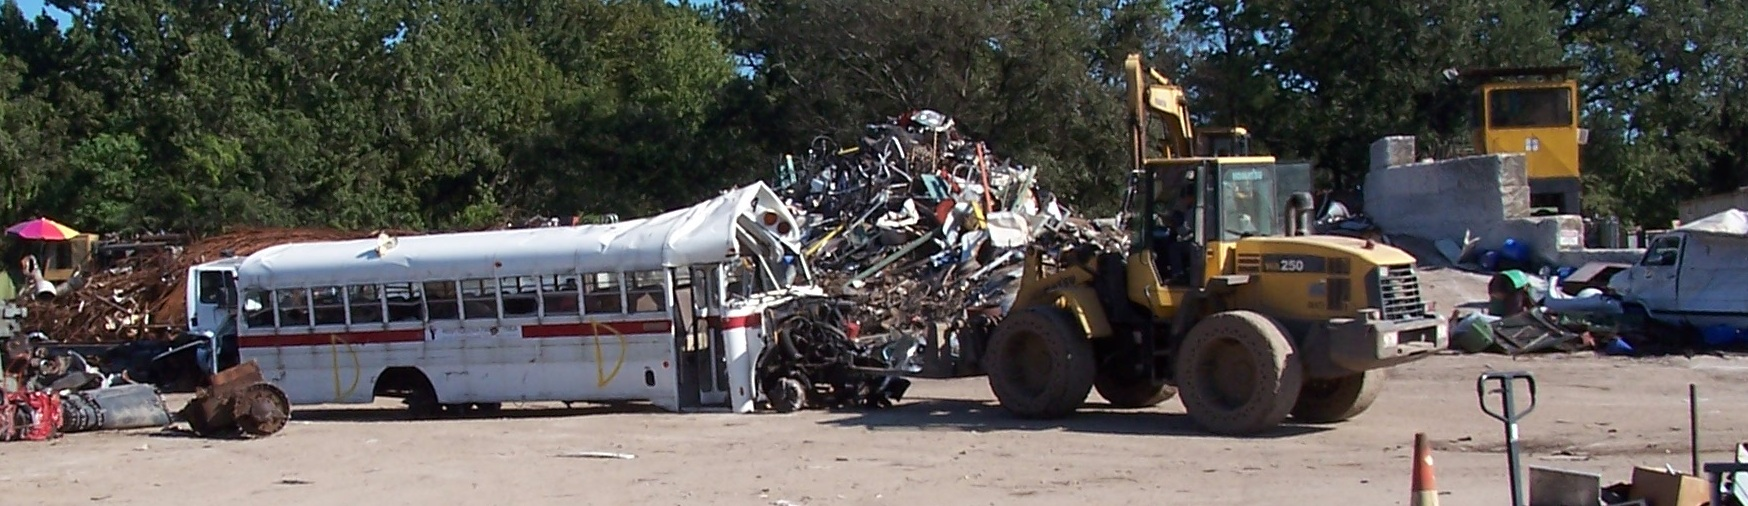 419 Metal Amp Auto Recycling Inc 600 Old Sanford Oviedo Rd